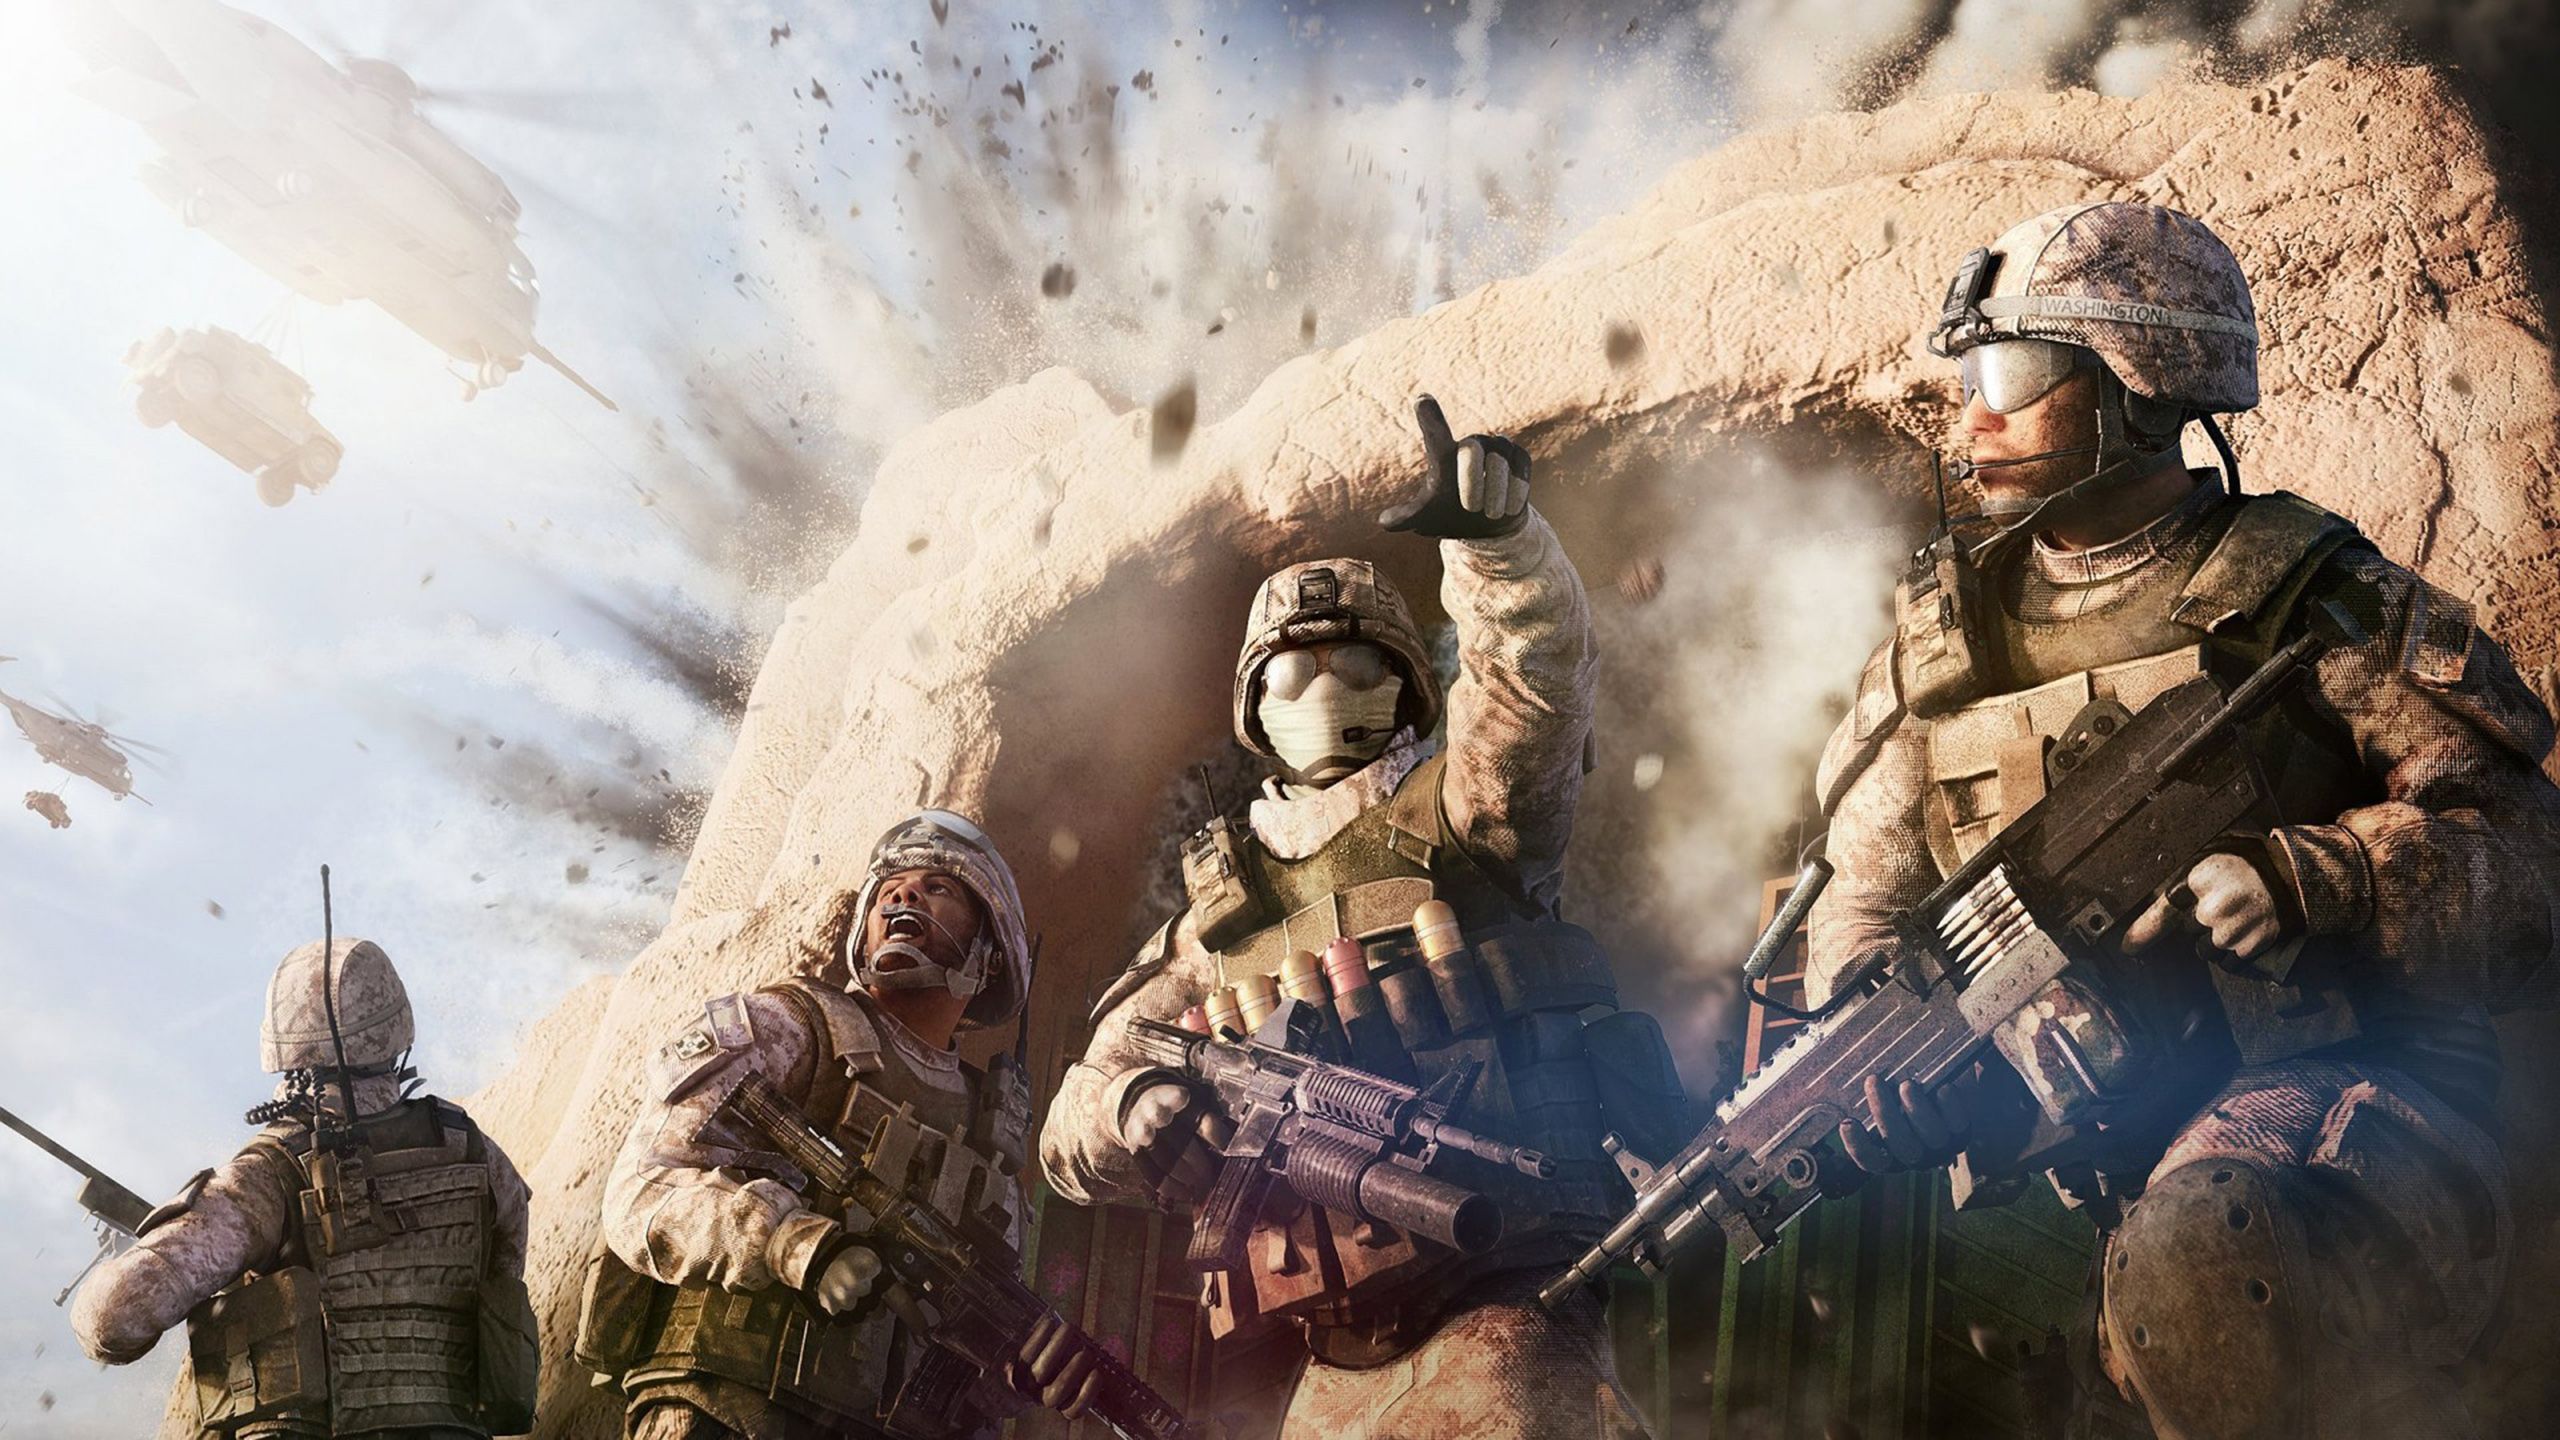 medal of honor games